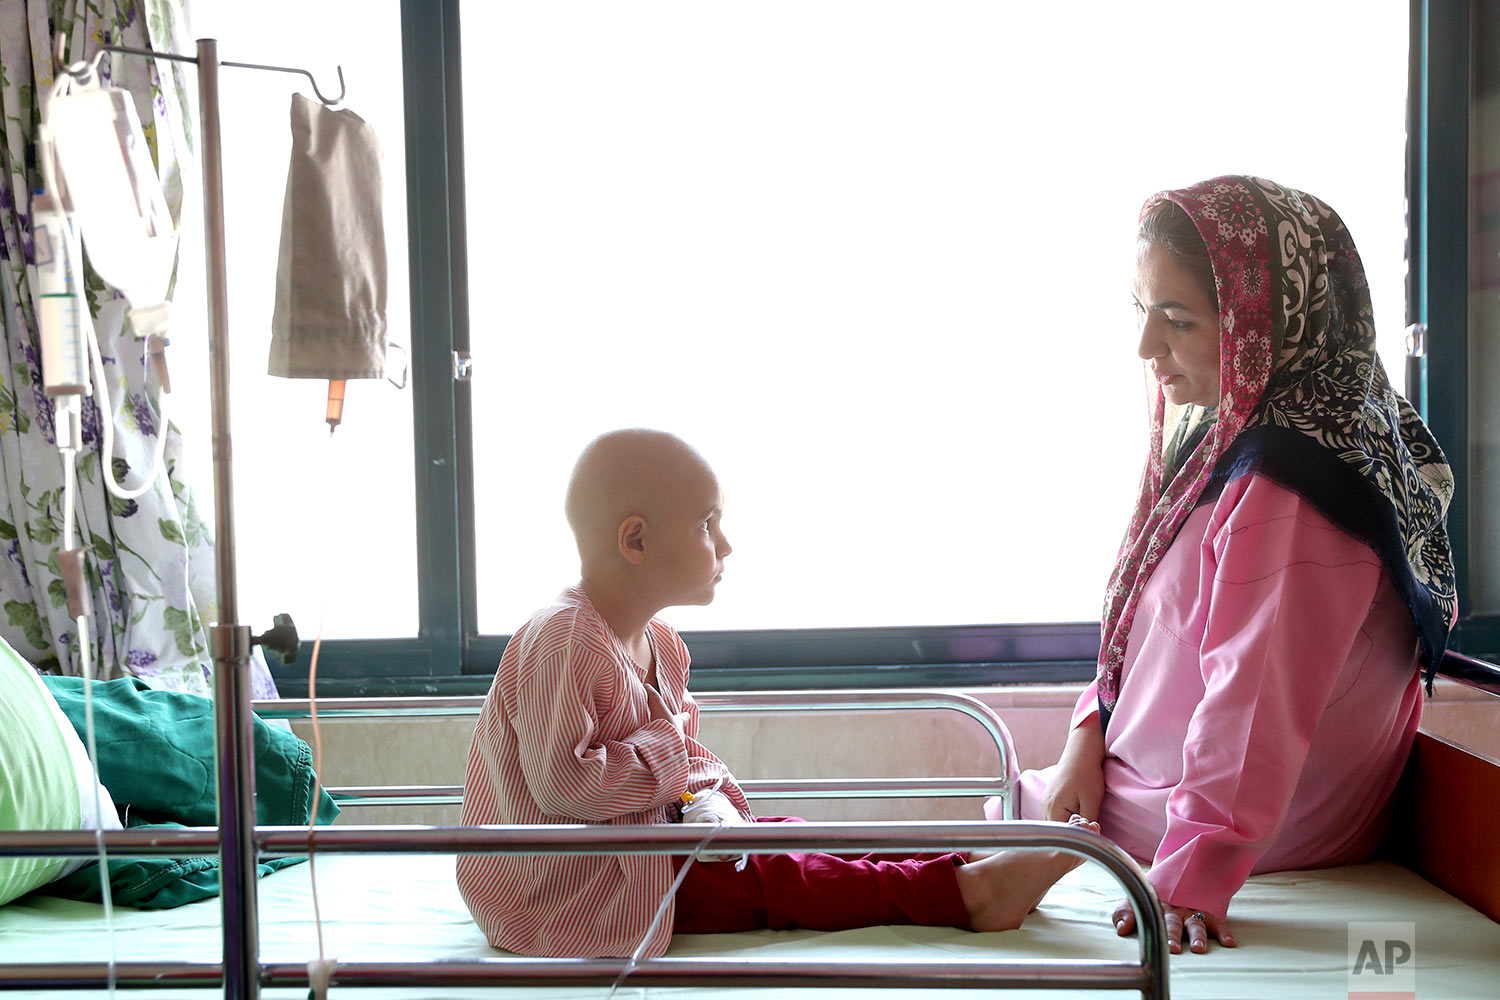 Parsa Amini, a 5-year-old boy suffering from eye cancer, speaks with his mother at Mahak Center's Hospital, in Tehran, Iran. (AP Photo/Ebrahim Noroozi)